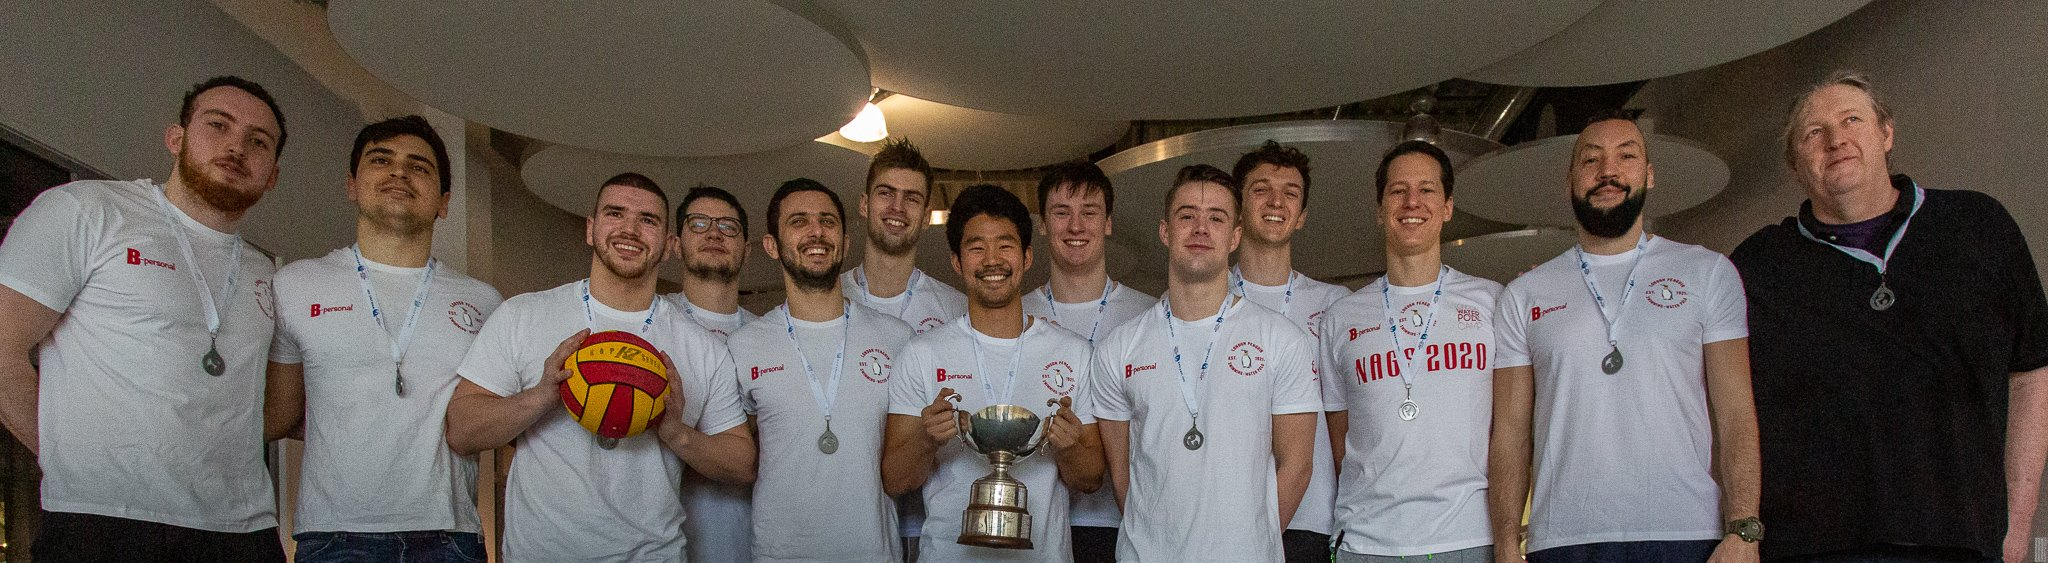 Penguin mens water polo team holding trophy